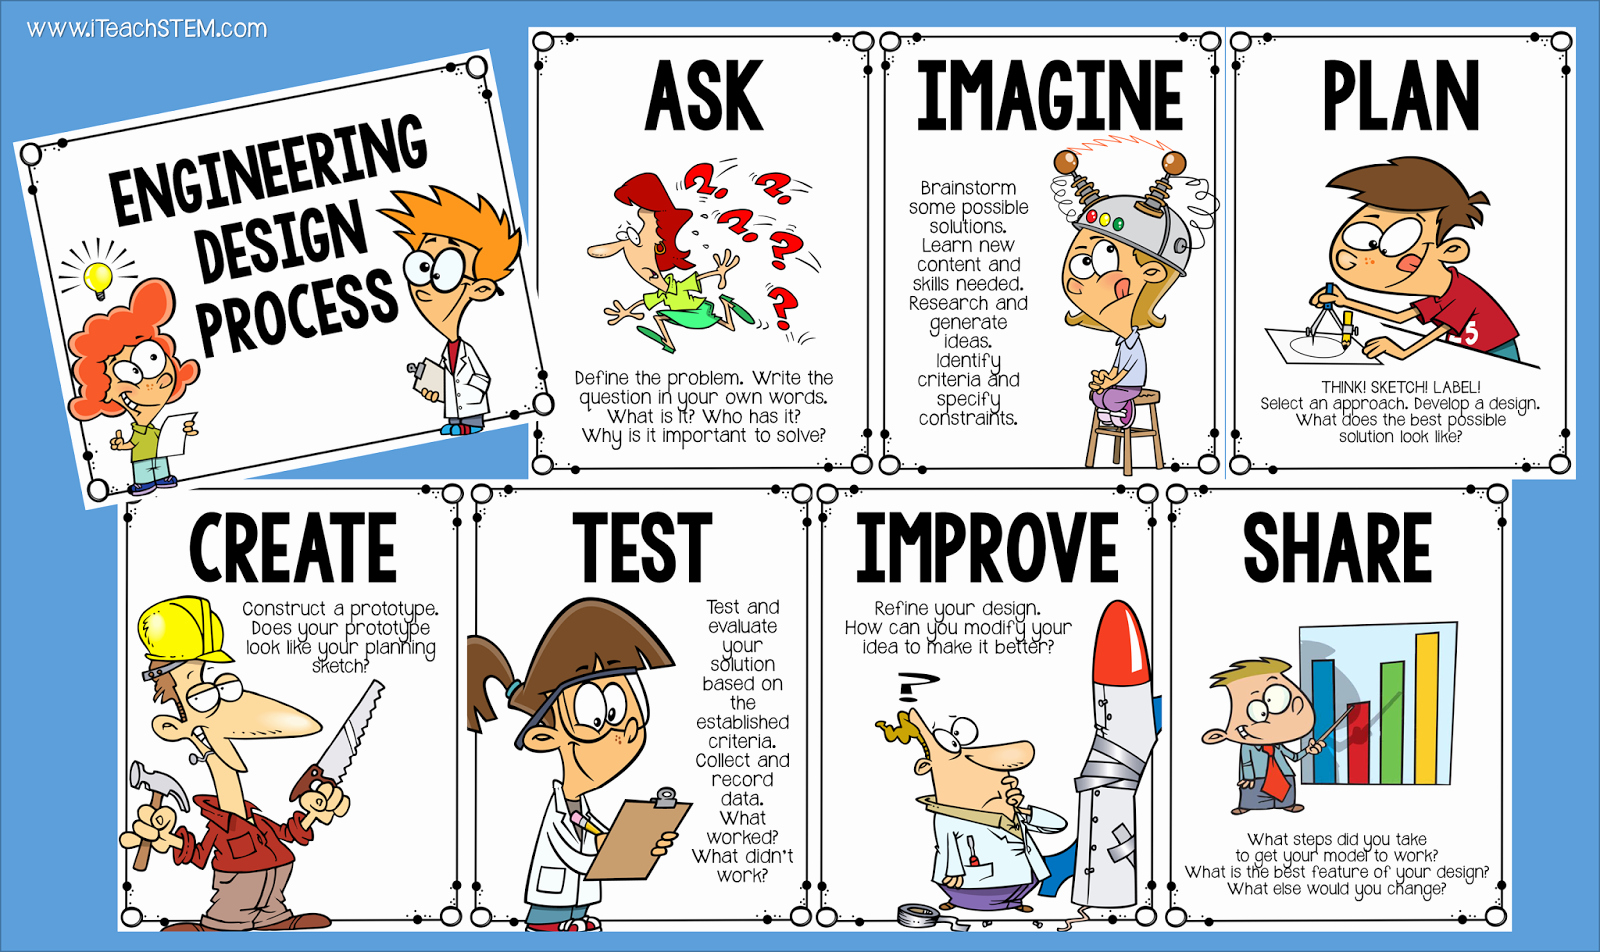 Engineering Design Process Worksheet Pdf Elegant top Quality Stem Resources Science Teachers Need to Engage